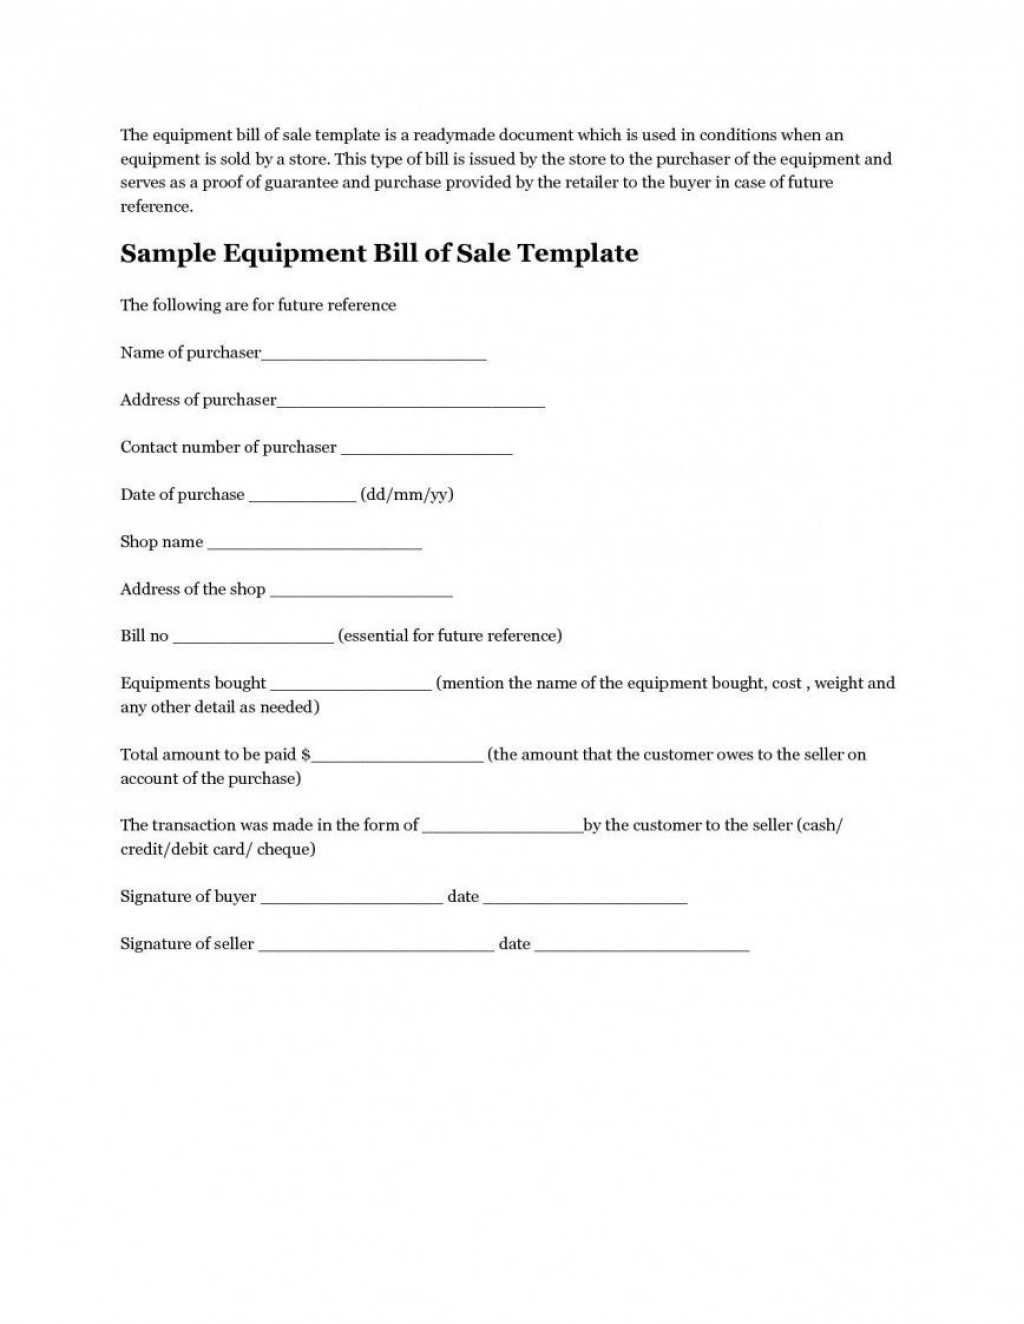 008 Unforgettable Microsoft Word Equipment Bill Of Sale Template Highest Clarity Large